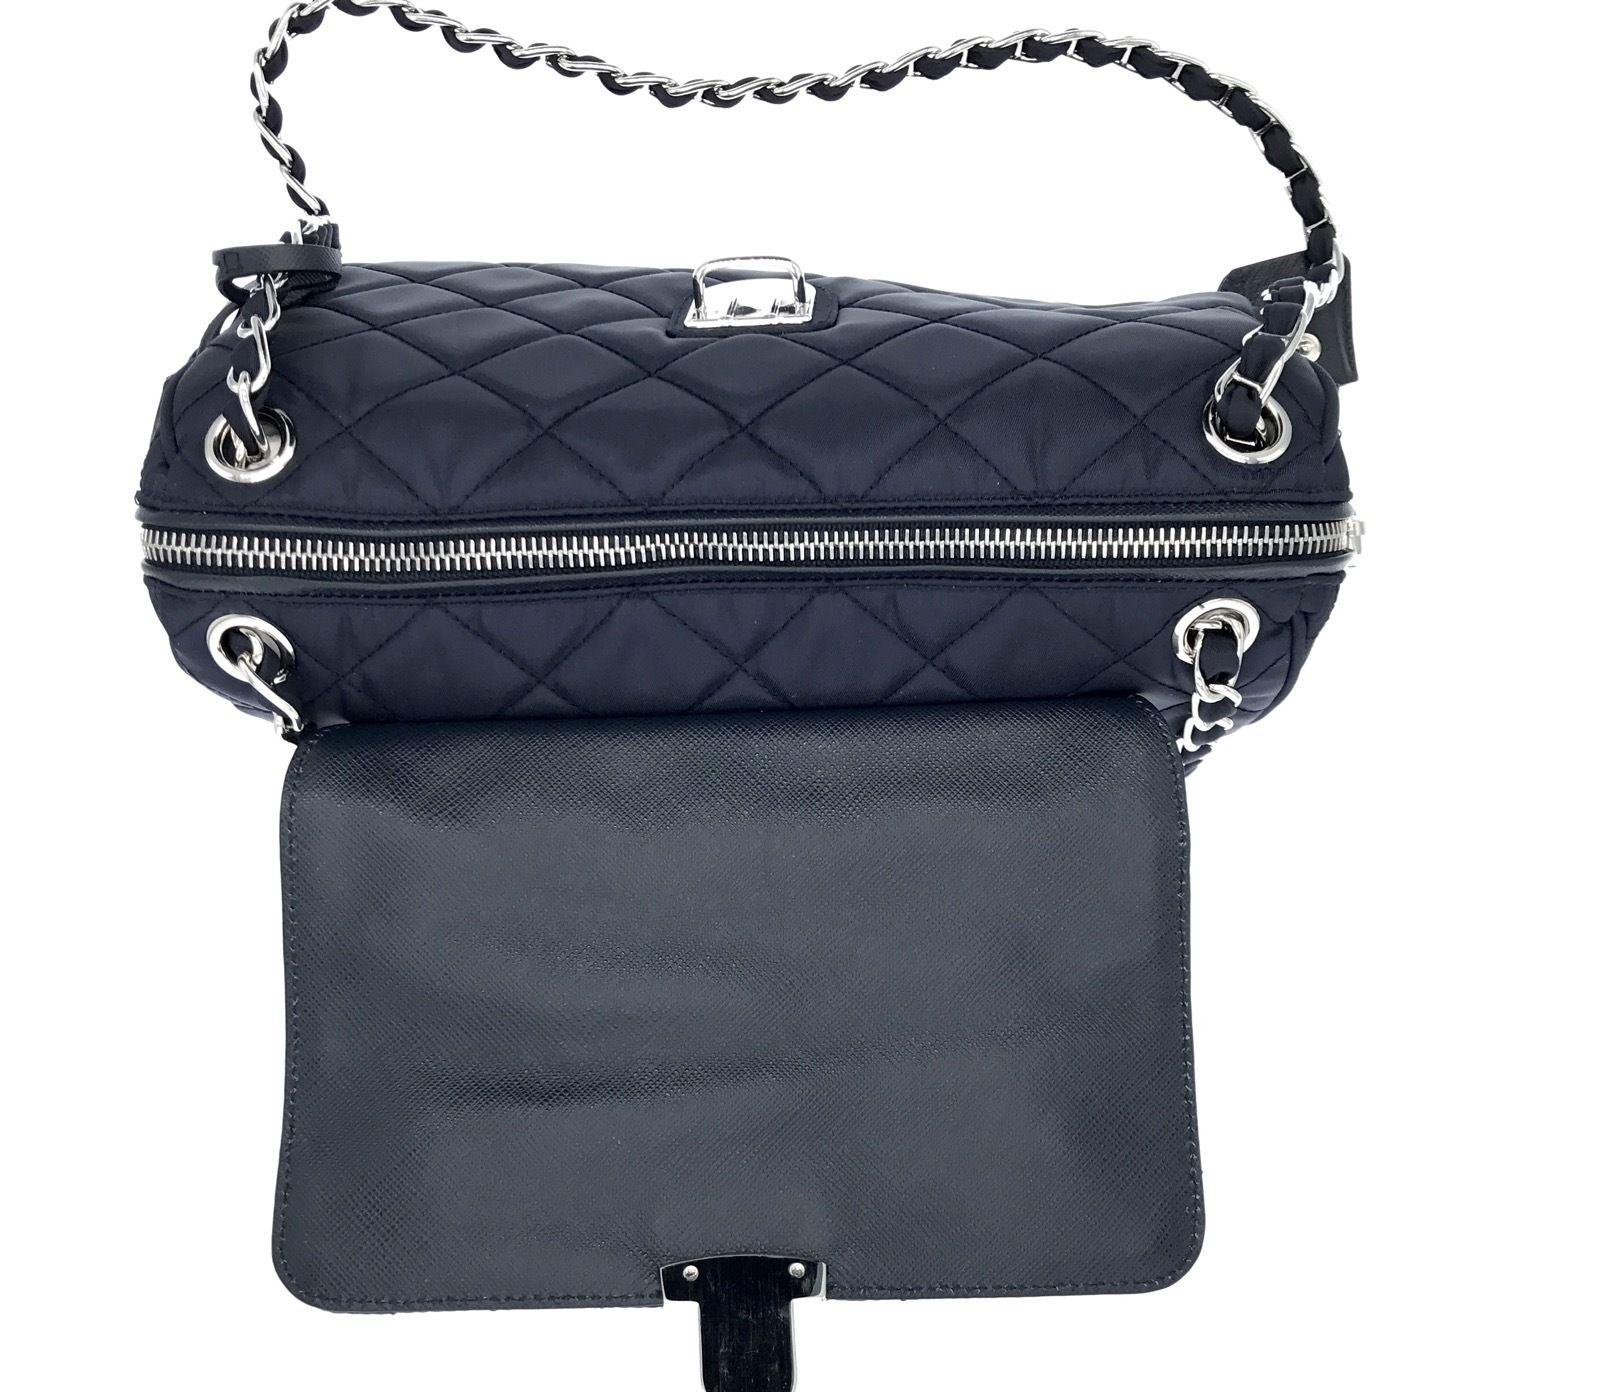 49918296fb85 Prada Tessuto Impuntu Crossbody Bag - Ontario Active School Travel